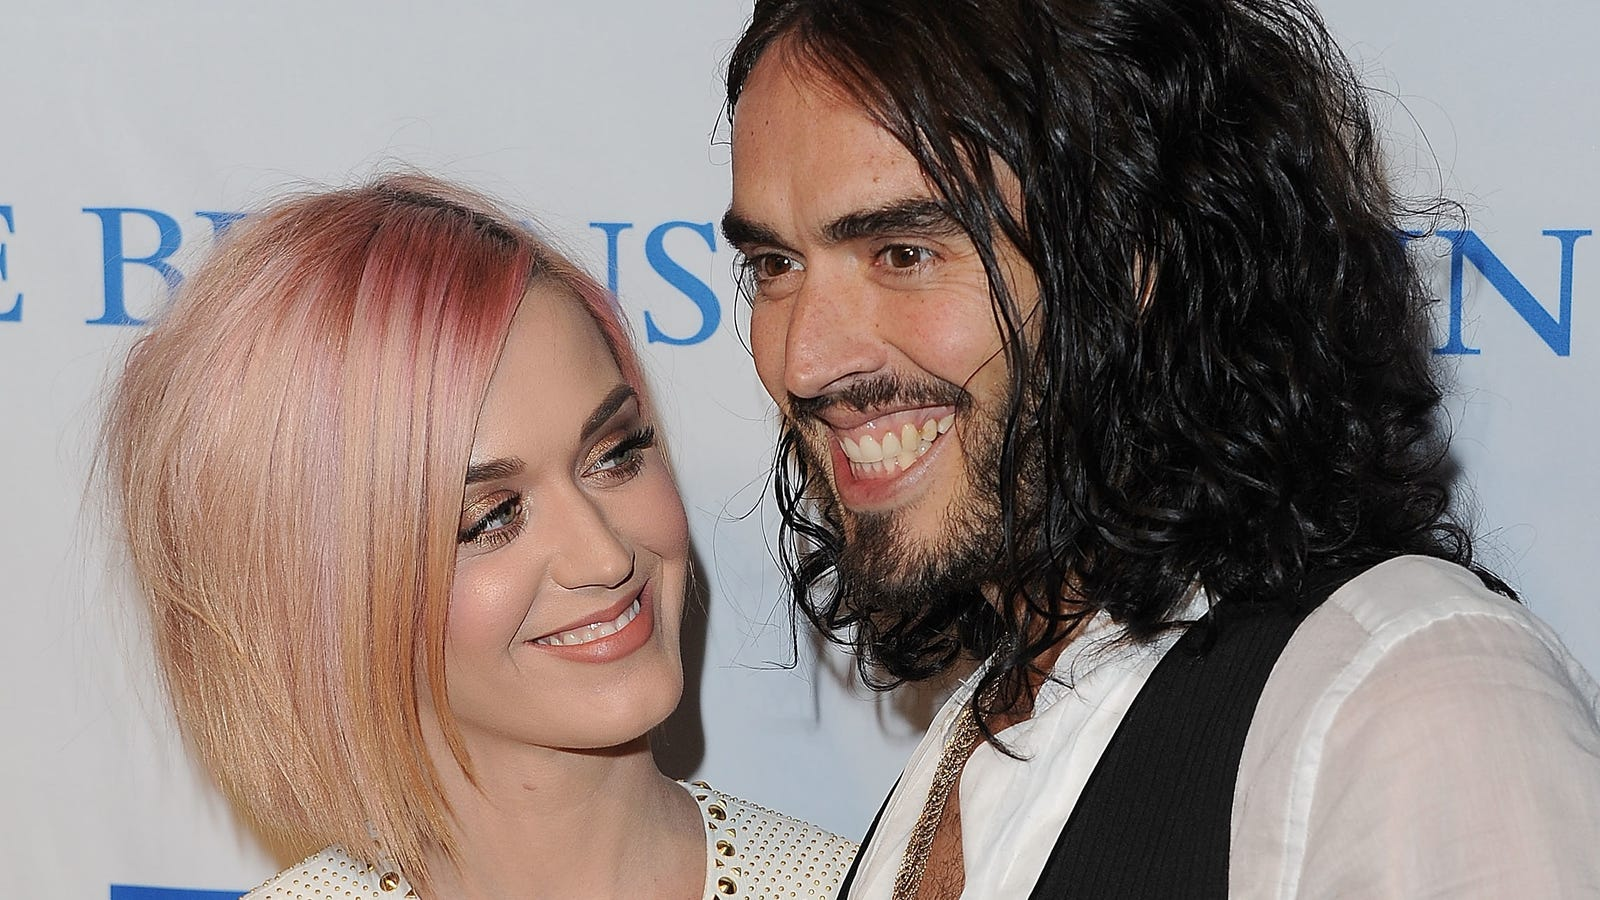 Russell Brand Wants to Reconcile With Ex-Wife Katy Perry Nearly Six Years After Dumping Her Via Text